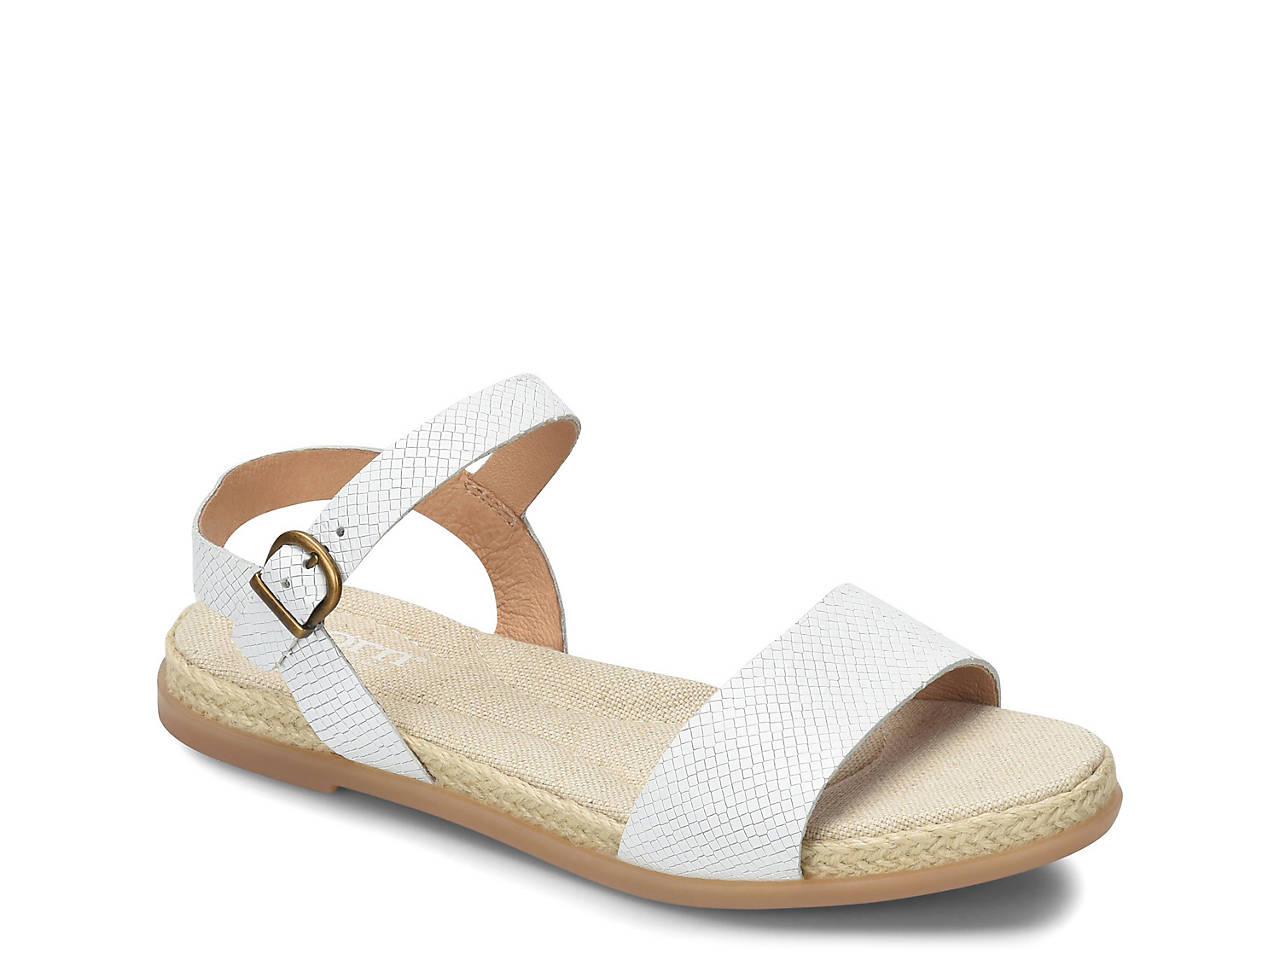 766f7808f2e2 Born Welch Espadrille Sandal Women s Shoes